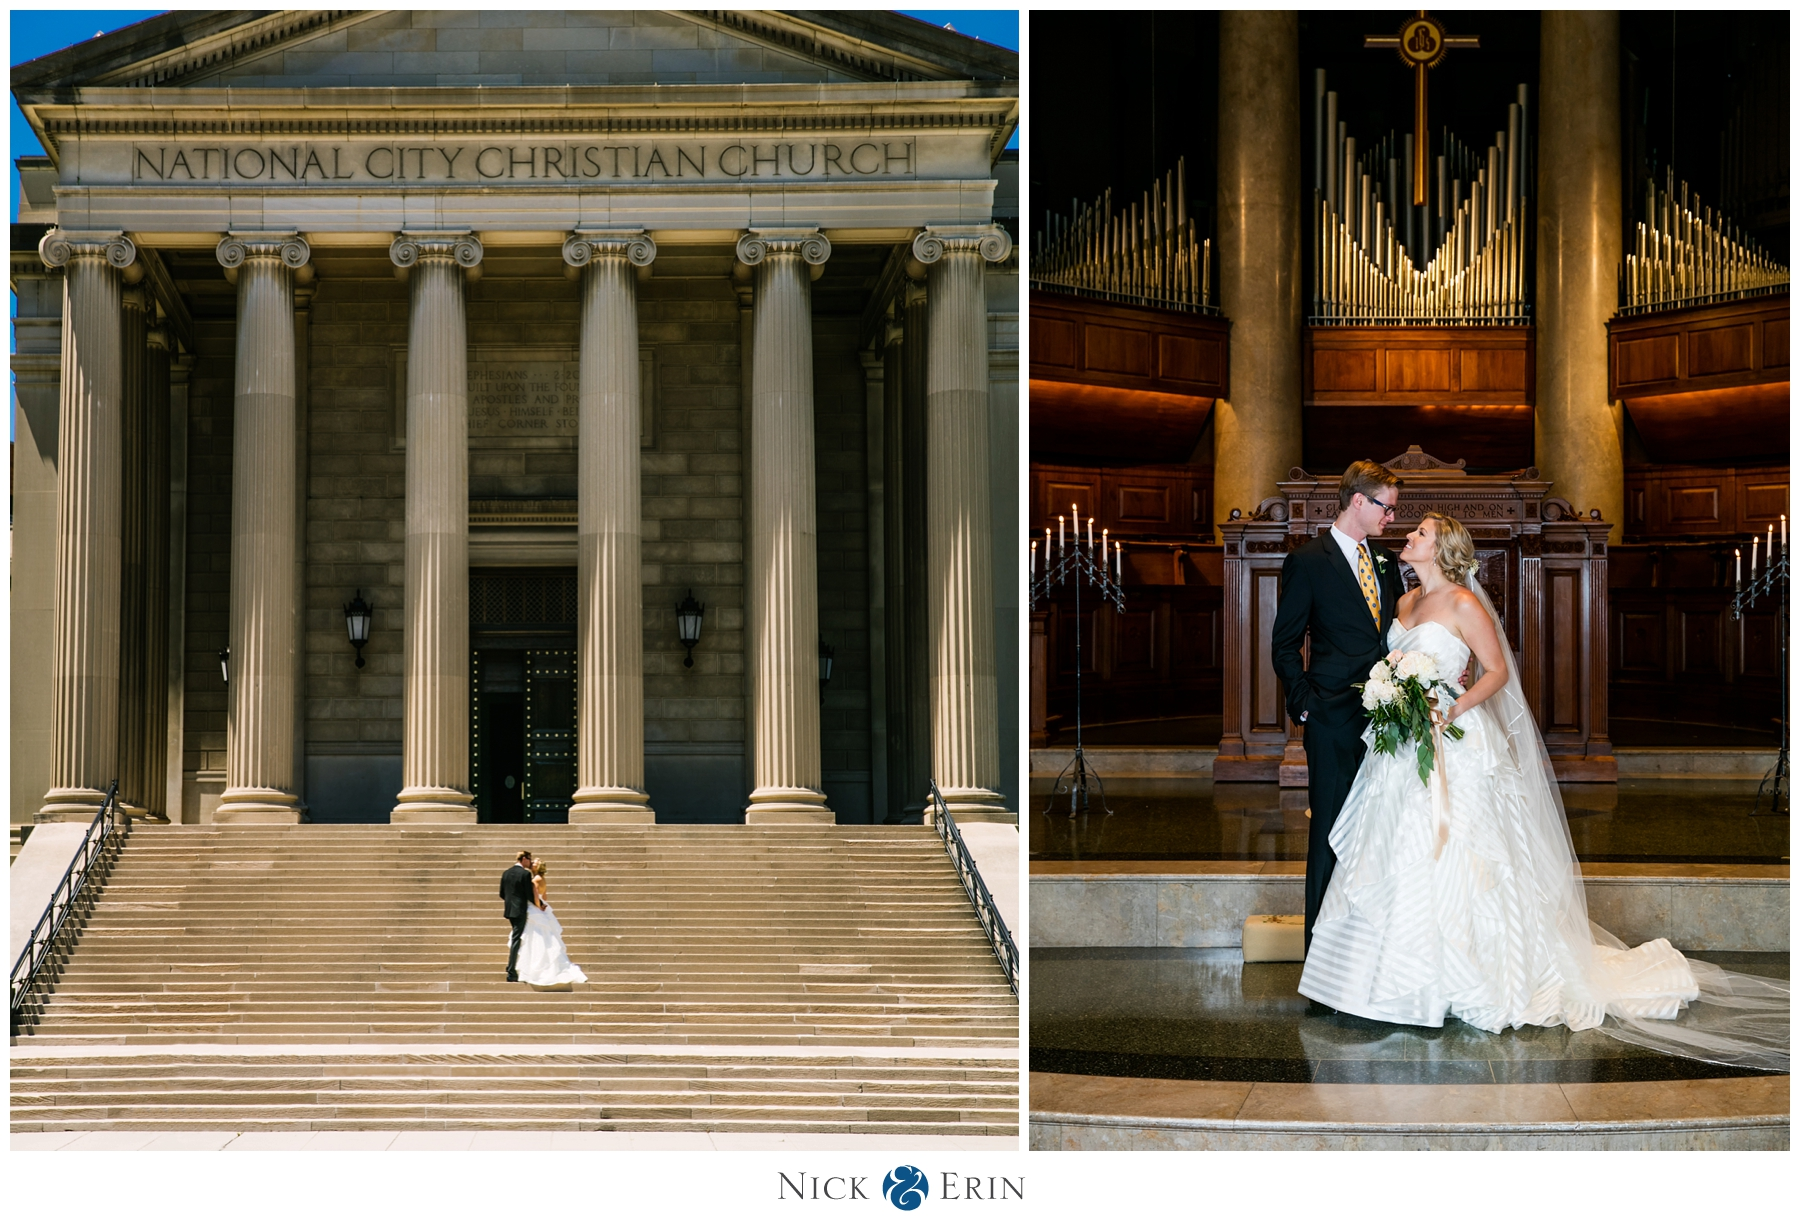 Donner_Photography_Washington DC Wedding_Rachel & Taylor_0008